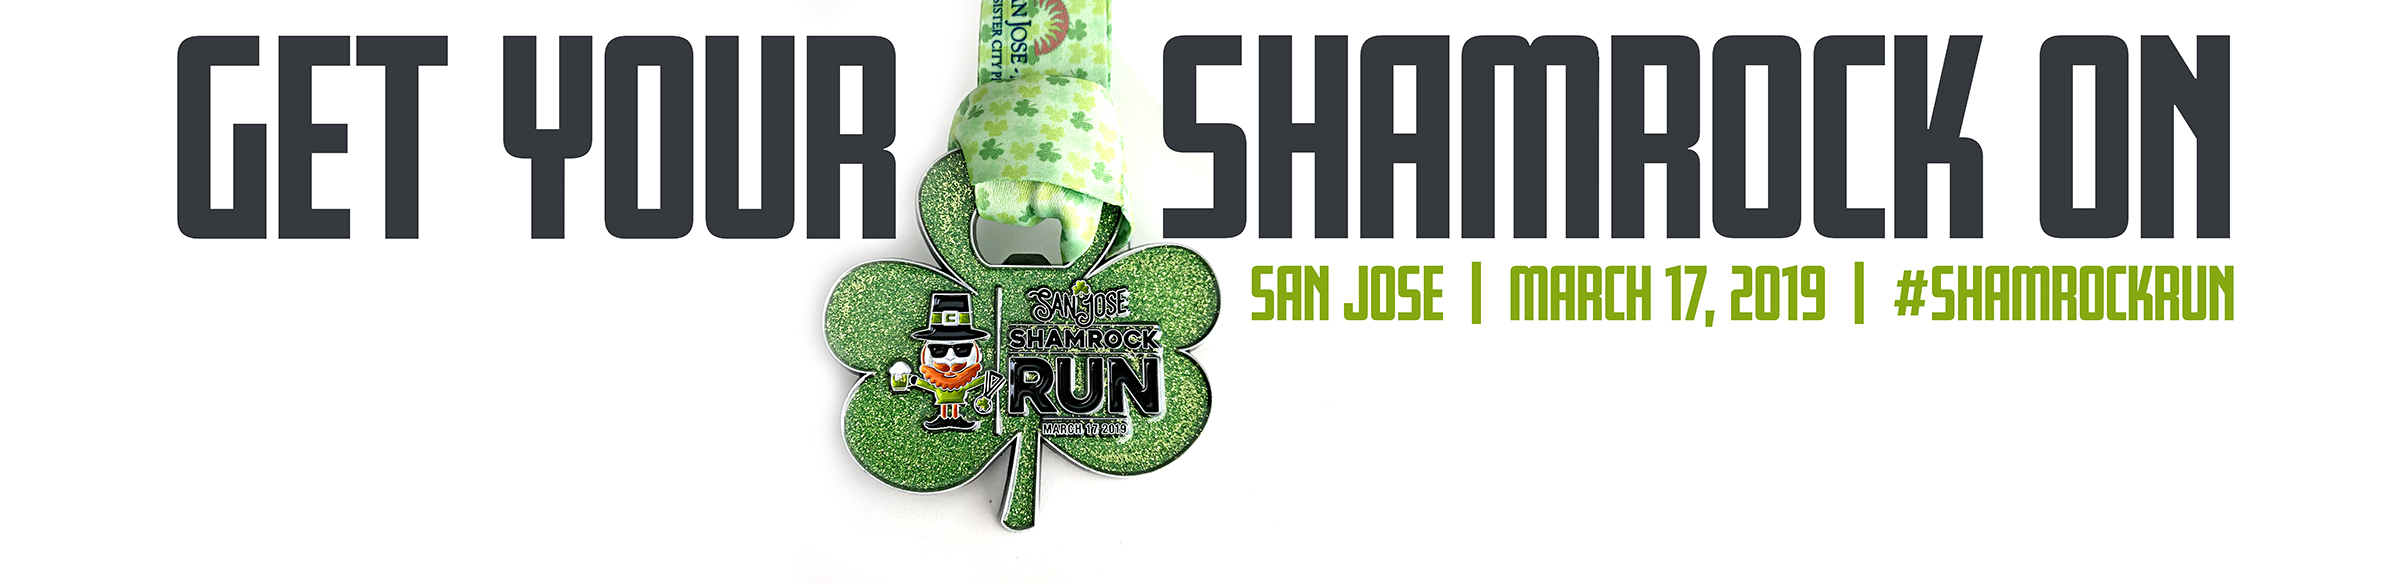 San Jose Shamrock Run